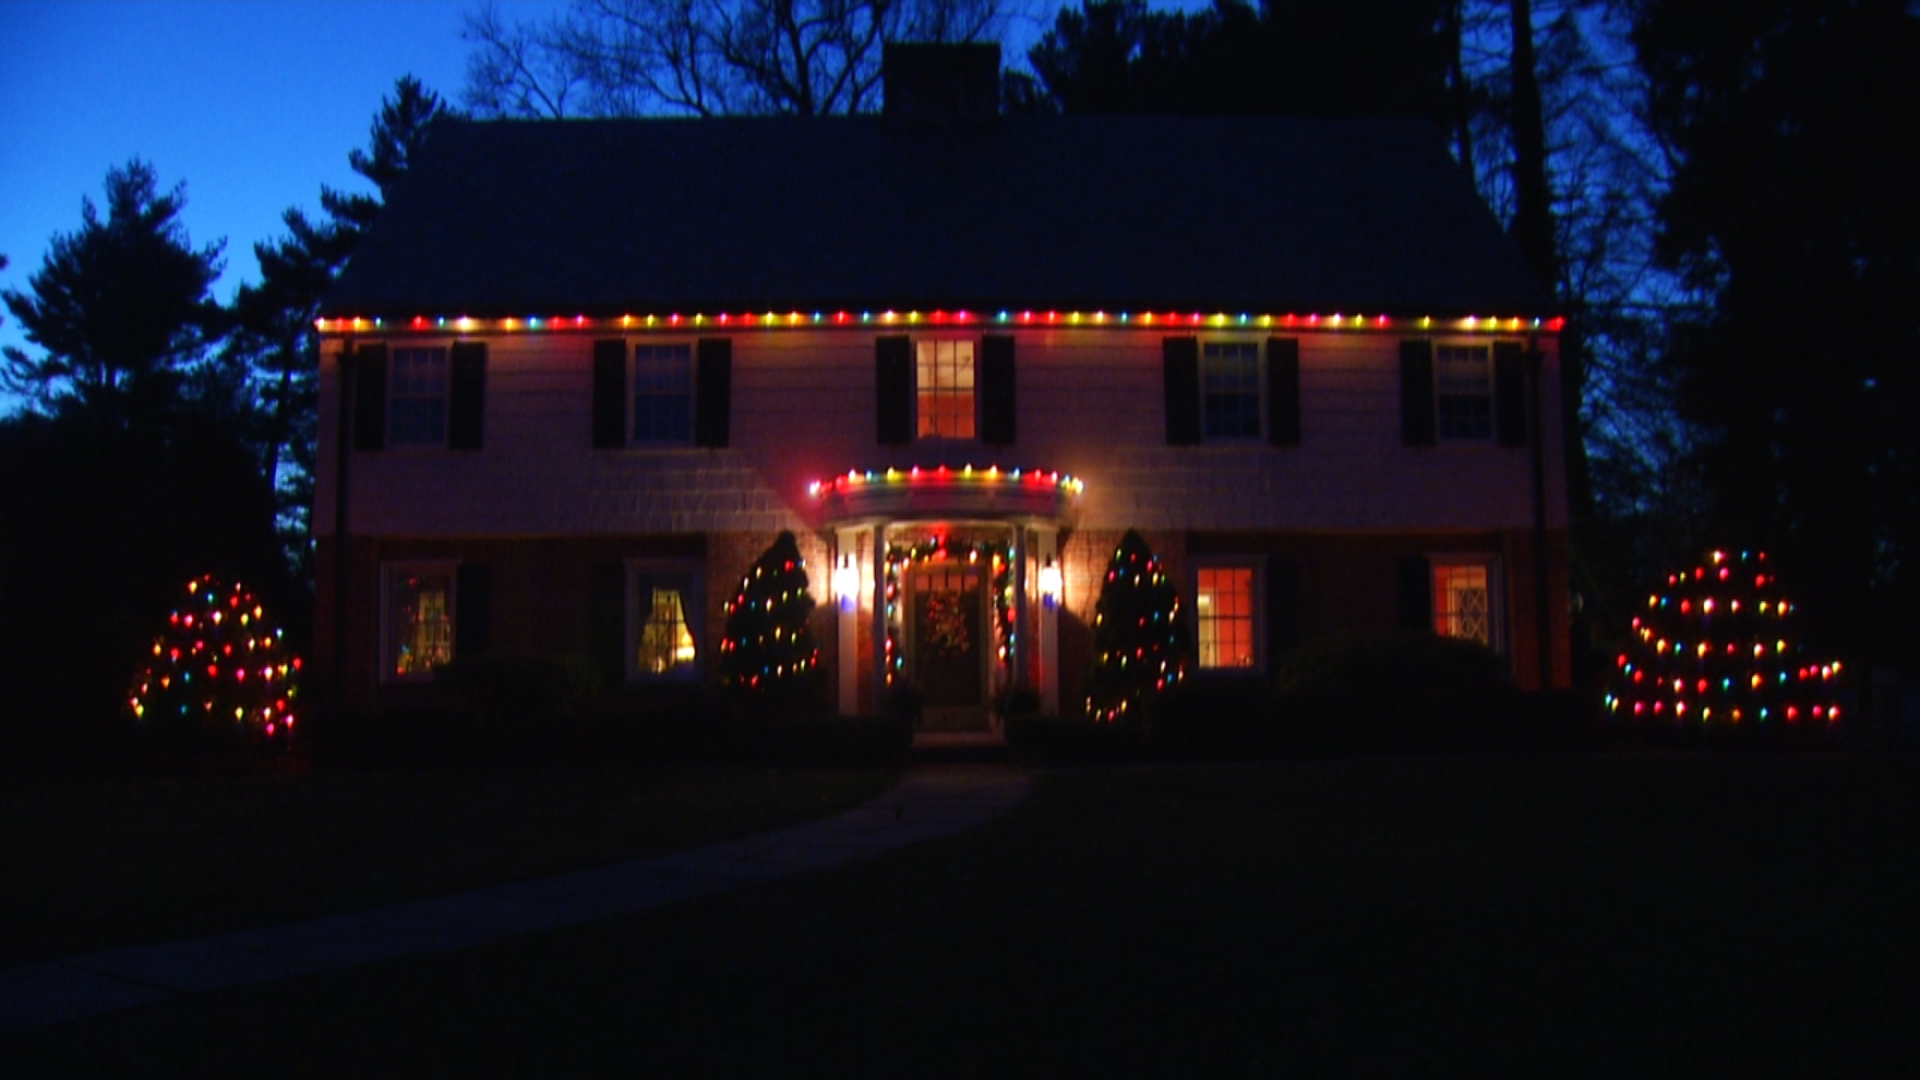 Grinch Christmas Lights.West Hartford Family Fears Vandals Snipped Christmas Lights